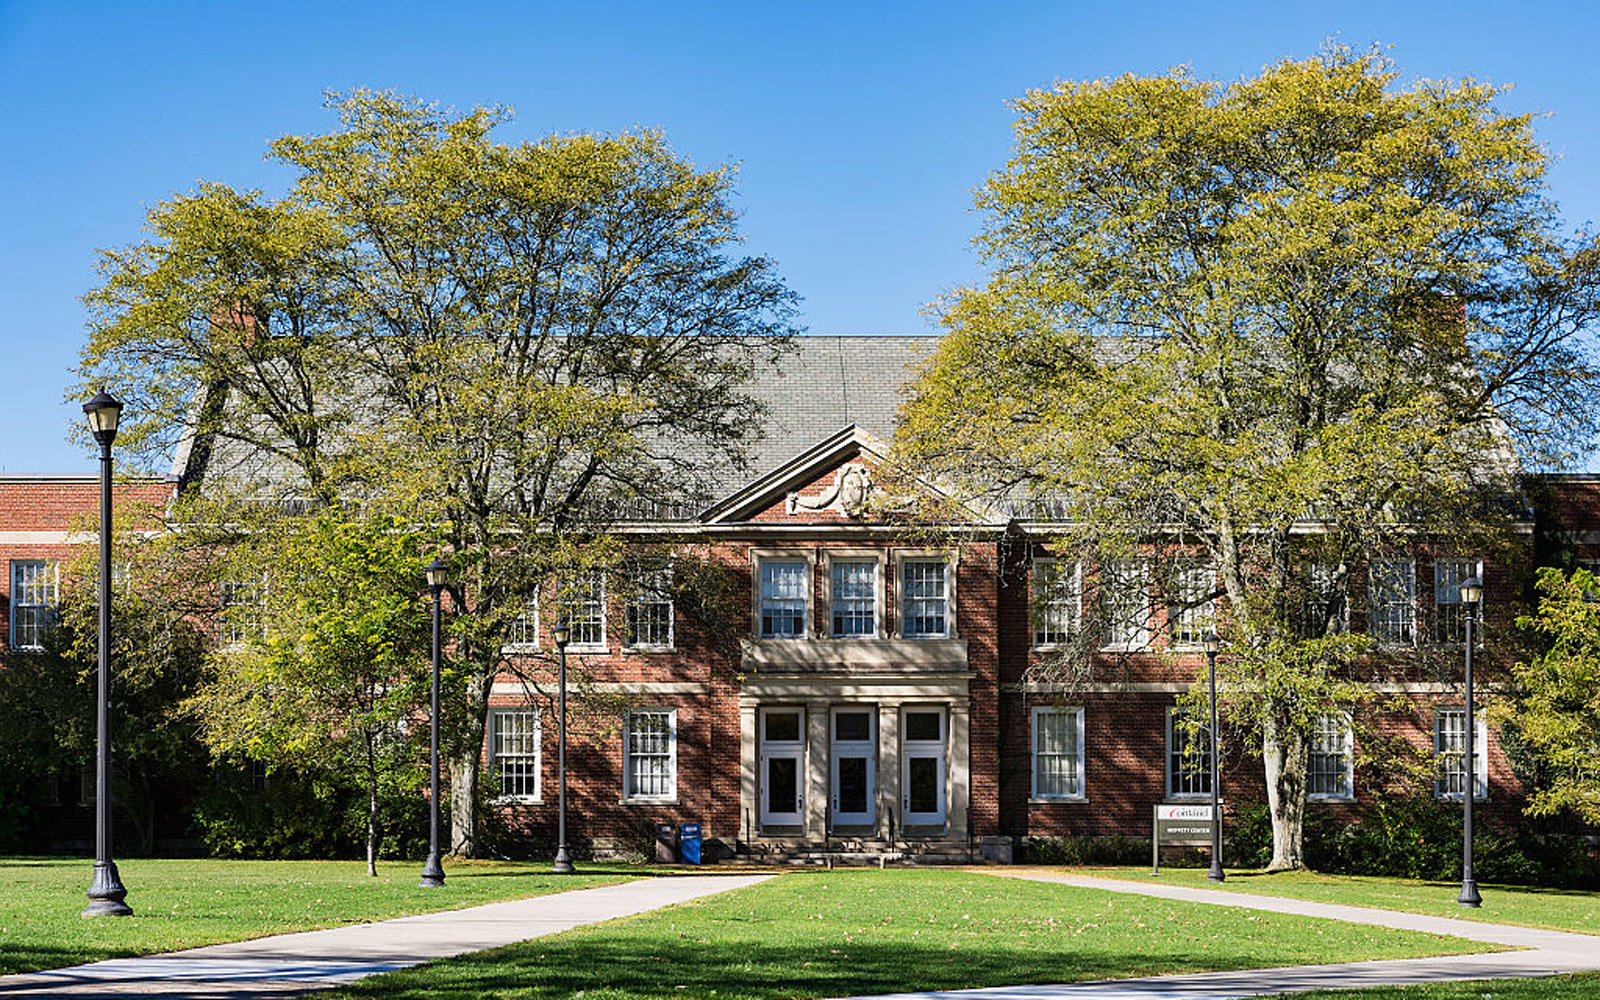 CORTLAND, NEW YORK, UNITED STATES - 2015/10/11: SUNY, State University of New York at Cortland Campus. (Photo by John Greim/LightRocket via Getty Images)